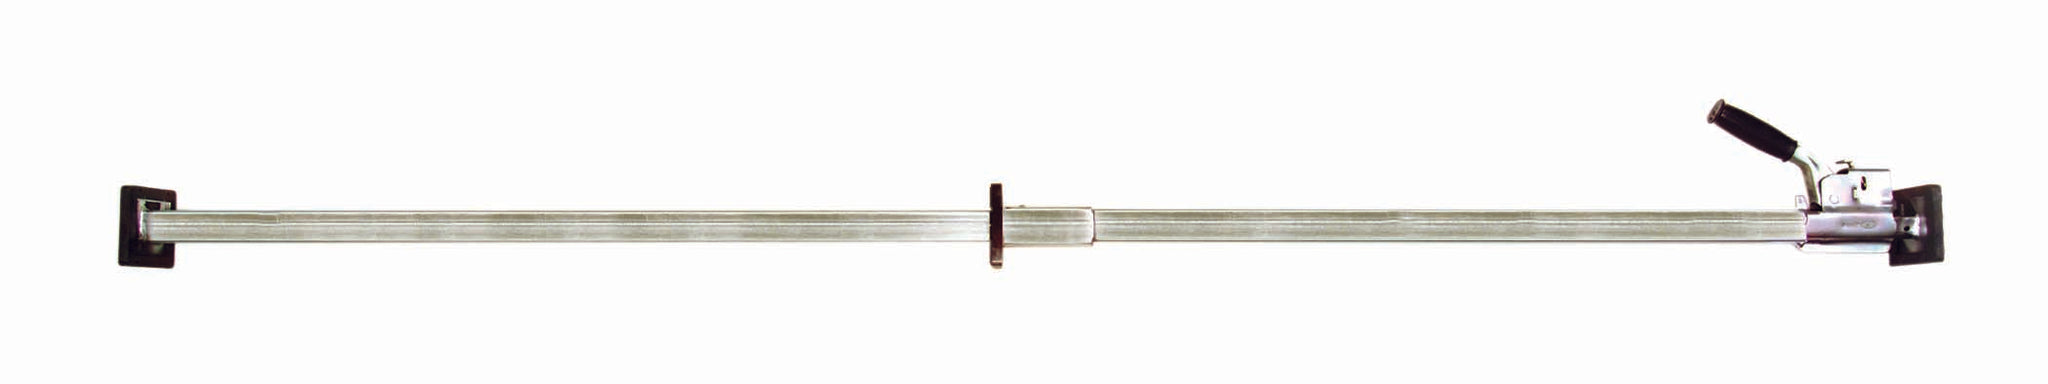 "TWO PIECE BAR WITH CENTER PAD - ADJUSTABLE LENGTH 84"" TO 113"""